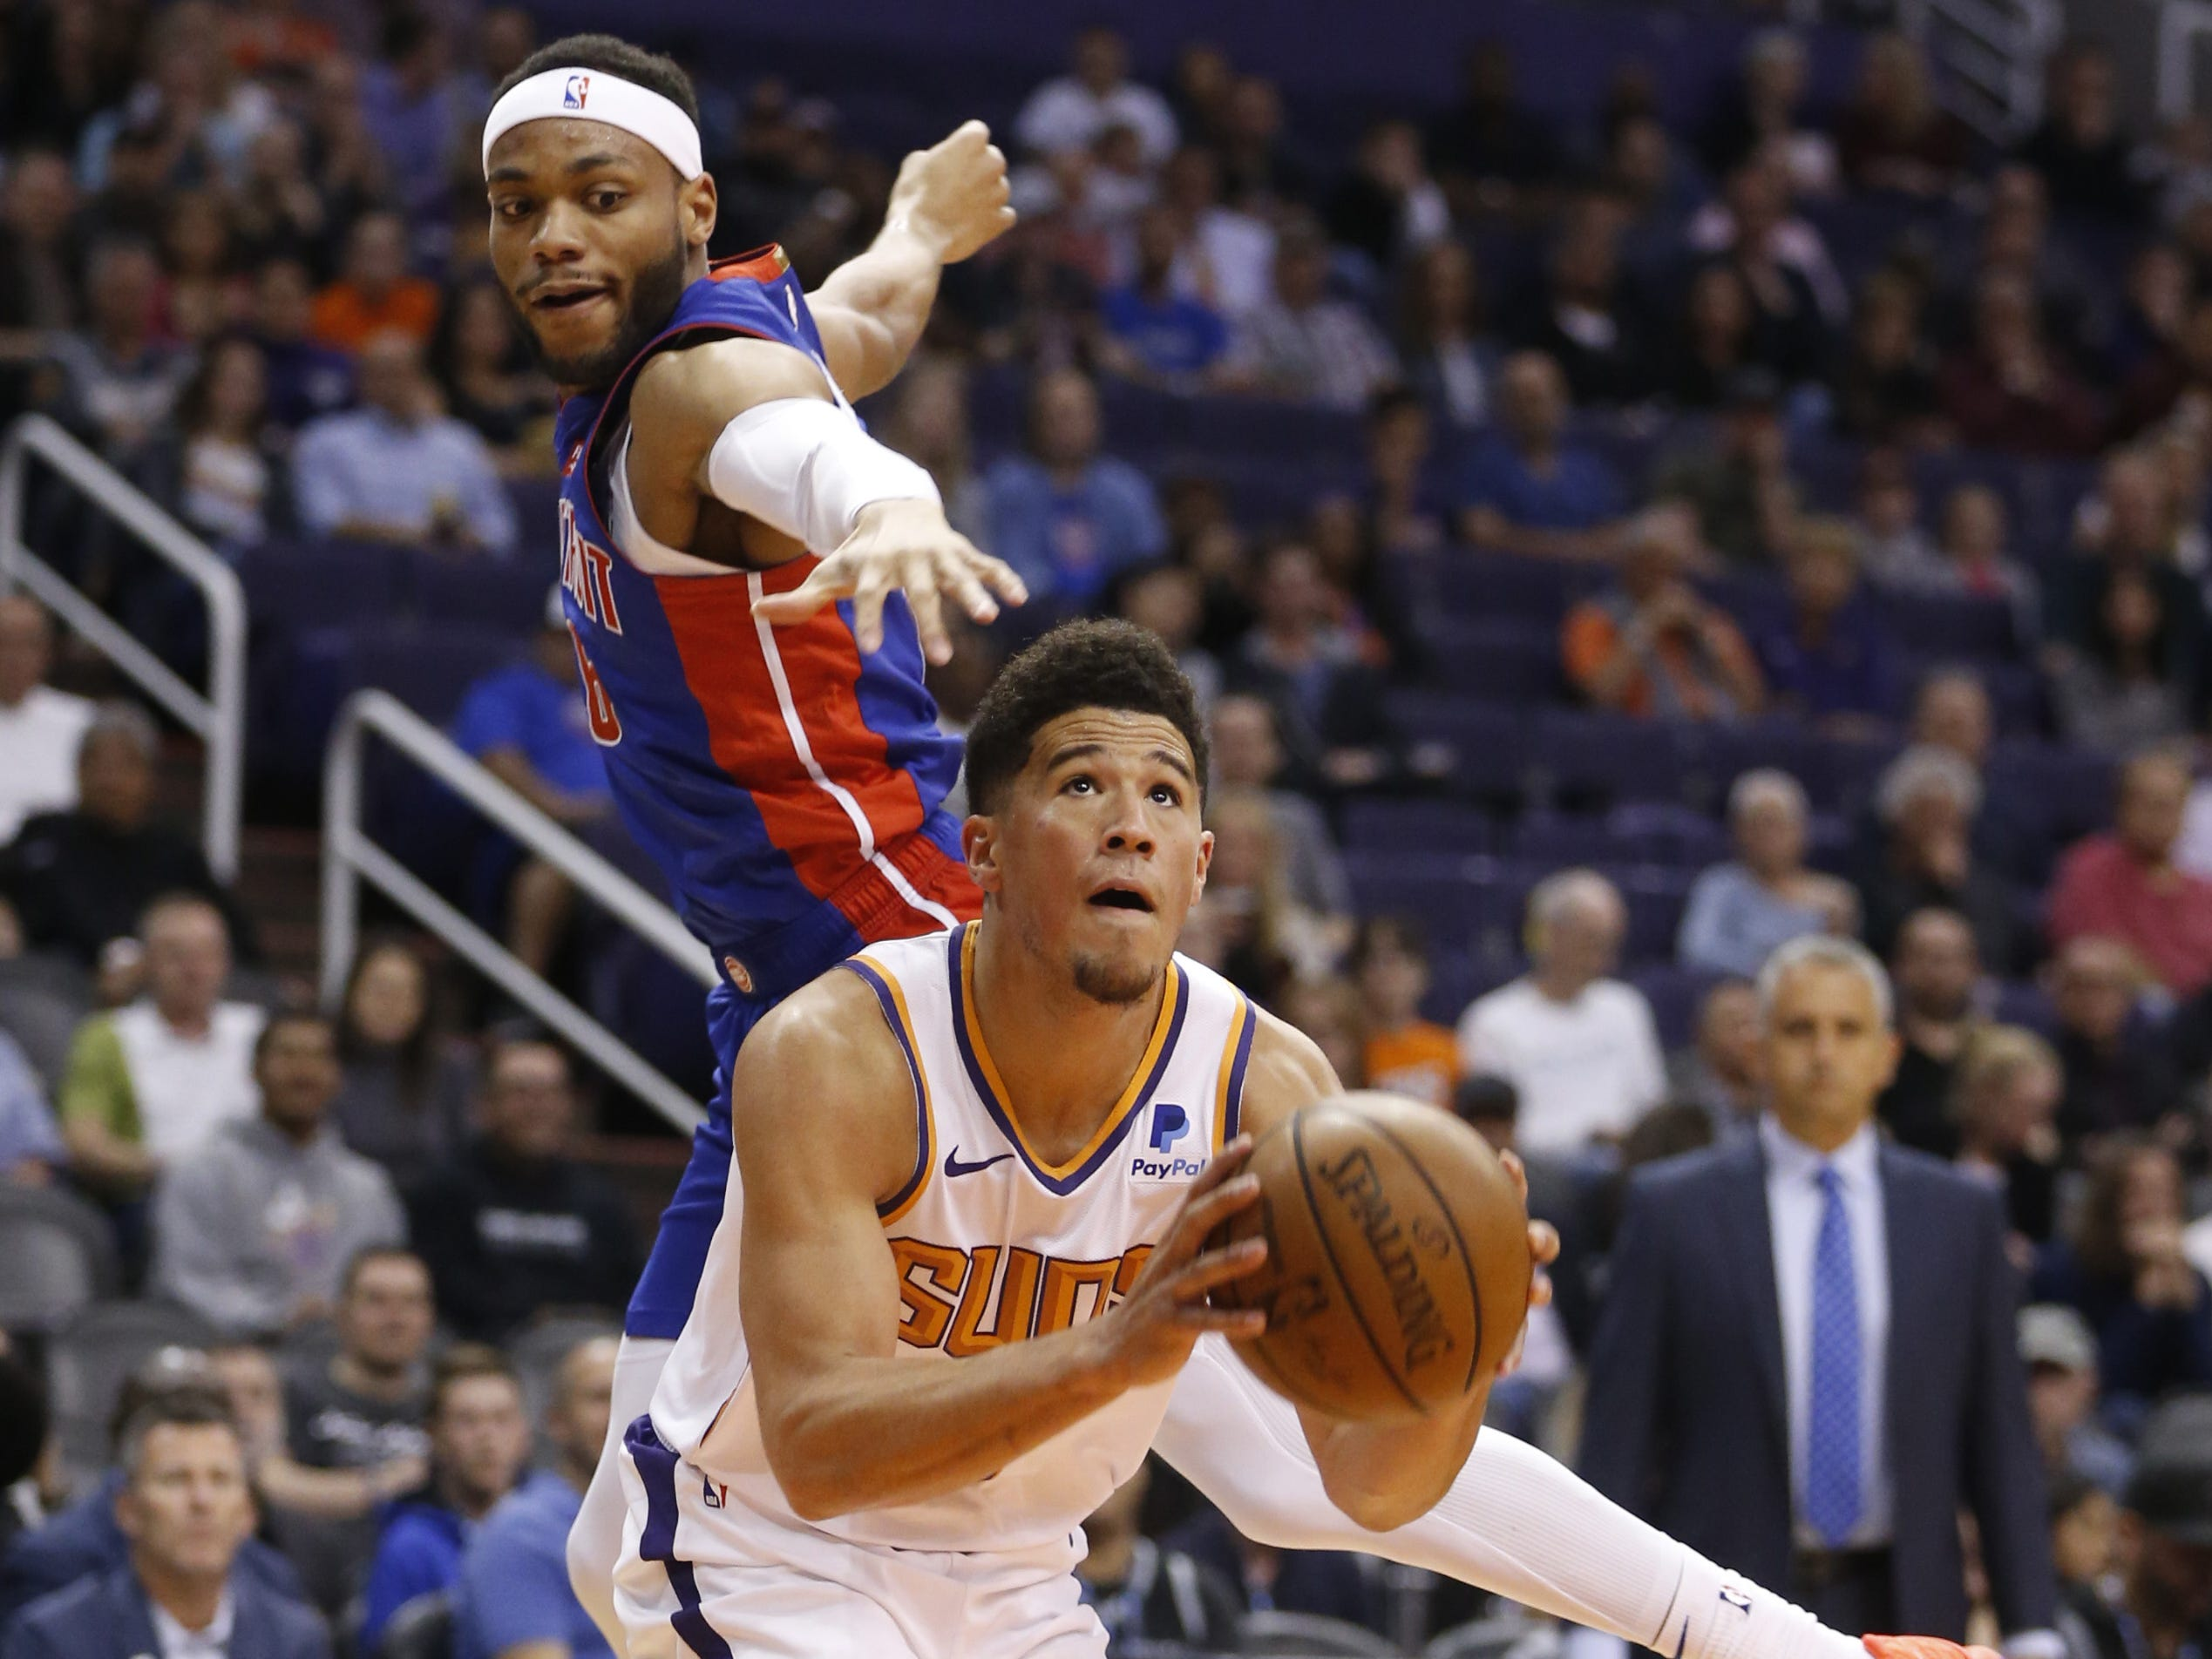 Suns' Devin Booker (1) shoots against Pistons' Bruce Brown (6) during the first half at the Talking Stick Resort Arena in Phoenix, Ariz. on March 21, 2019.